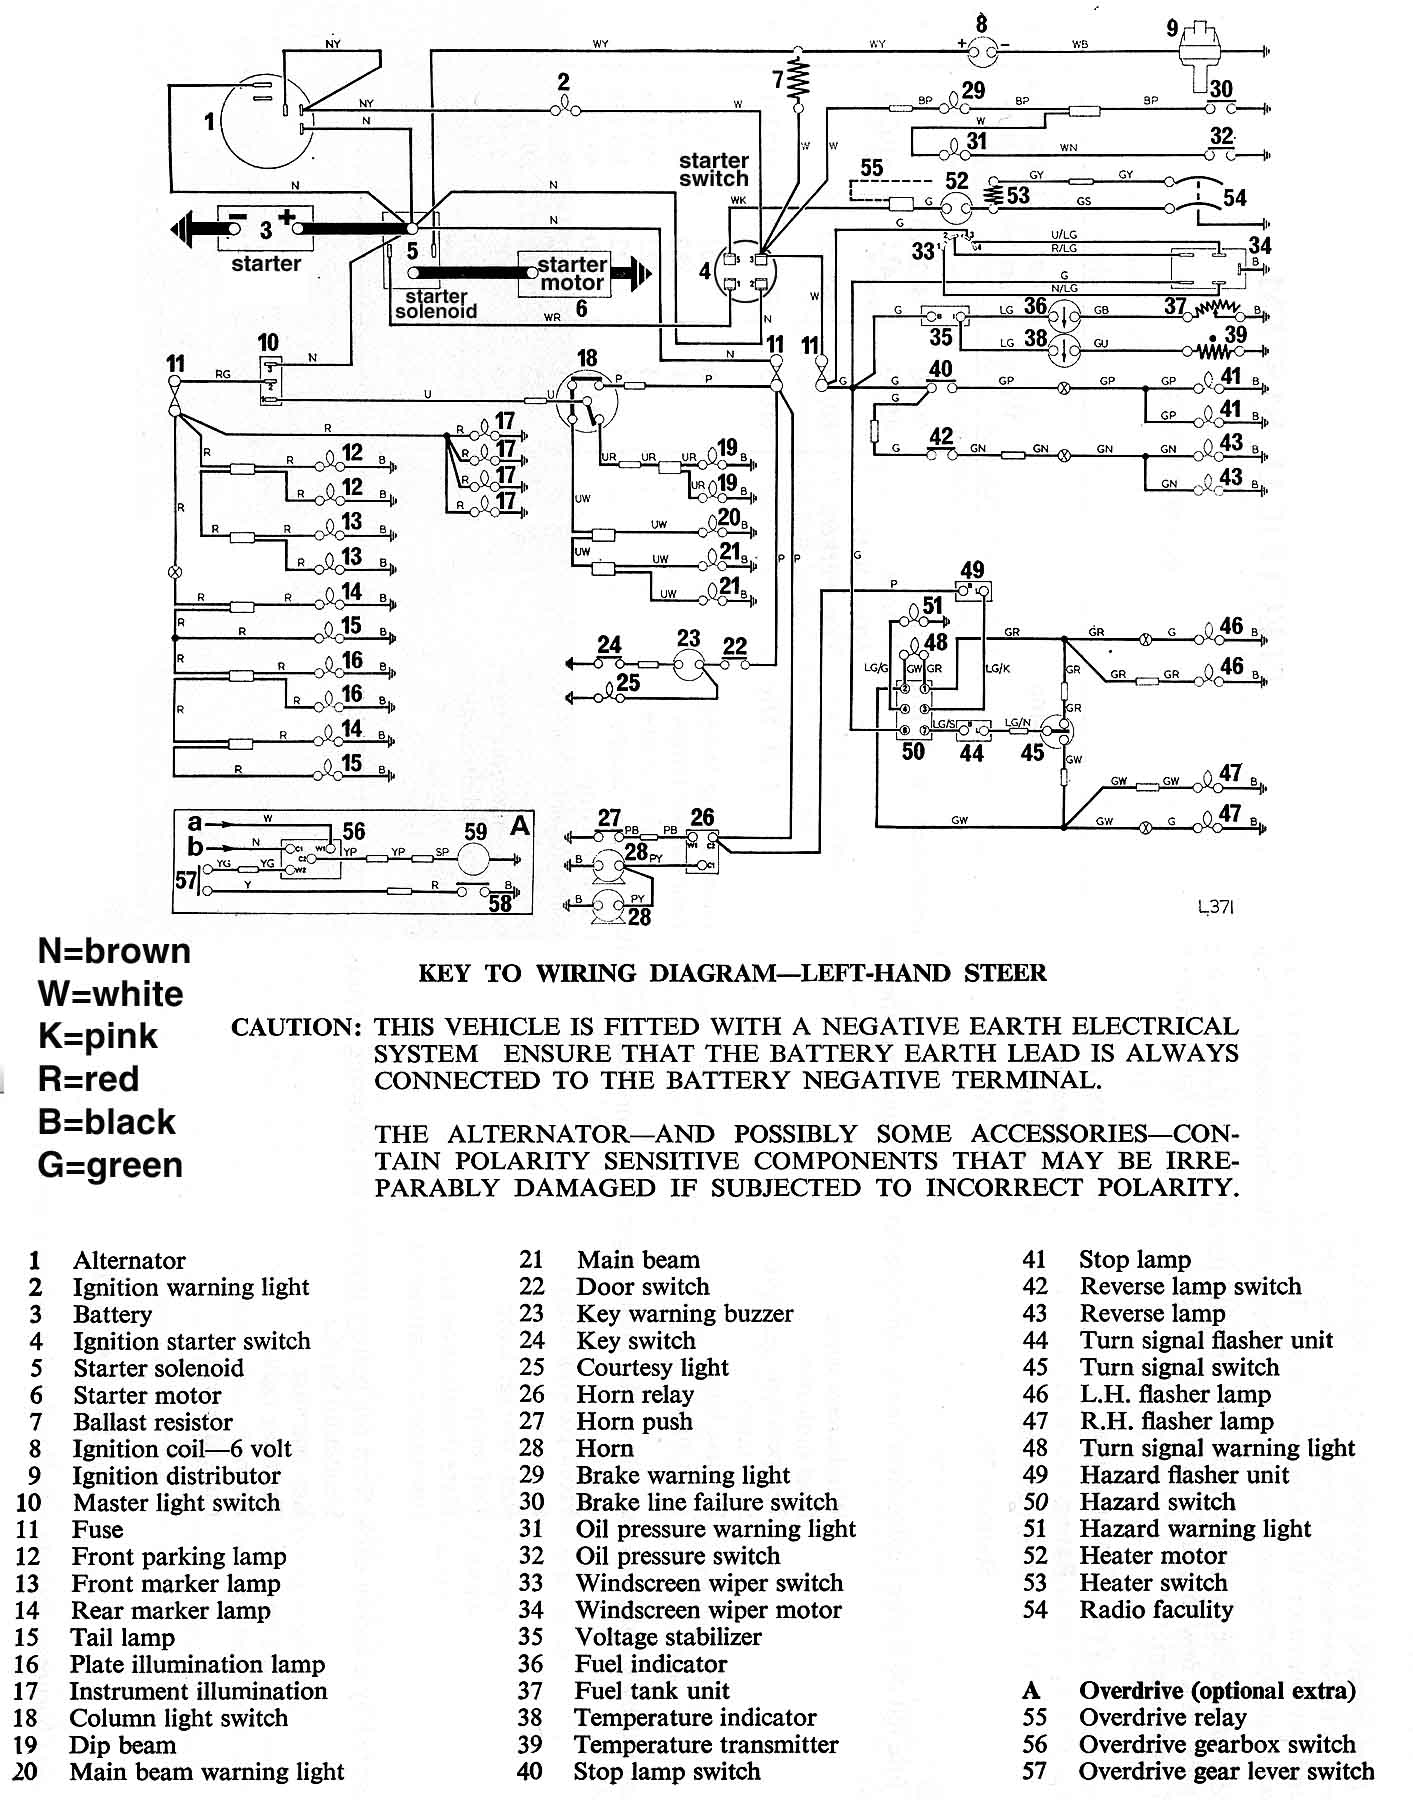 Triumph Spitfire Overdrive Gearbox Wiring Diagram Free Download Wire Library Rh 71 Skriptoase De